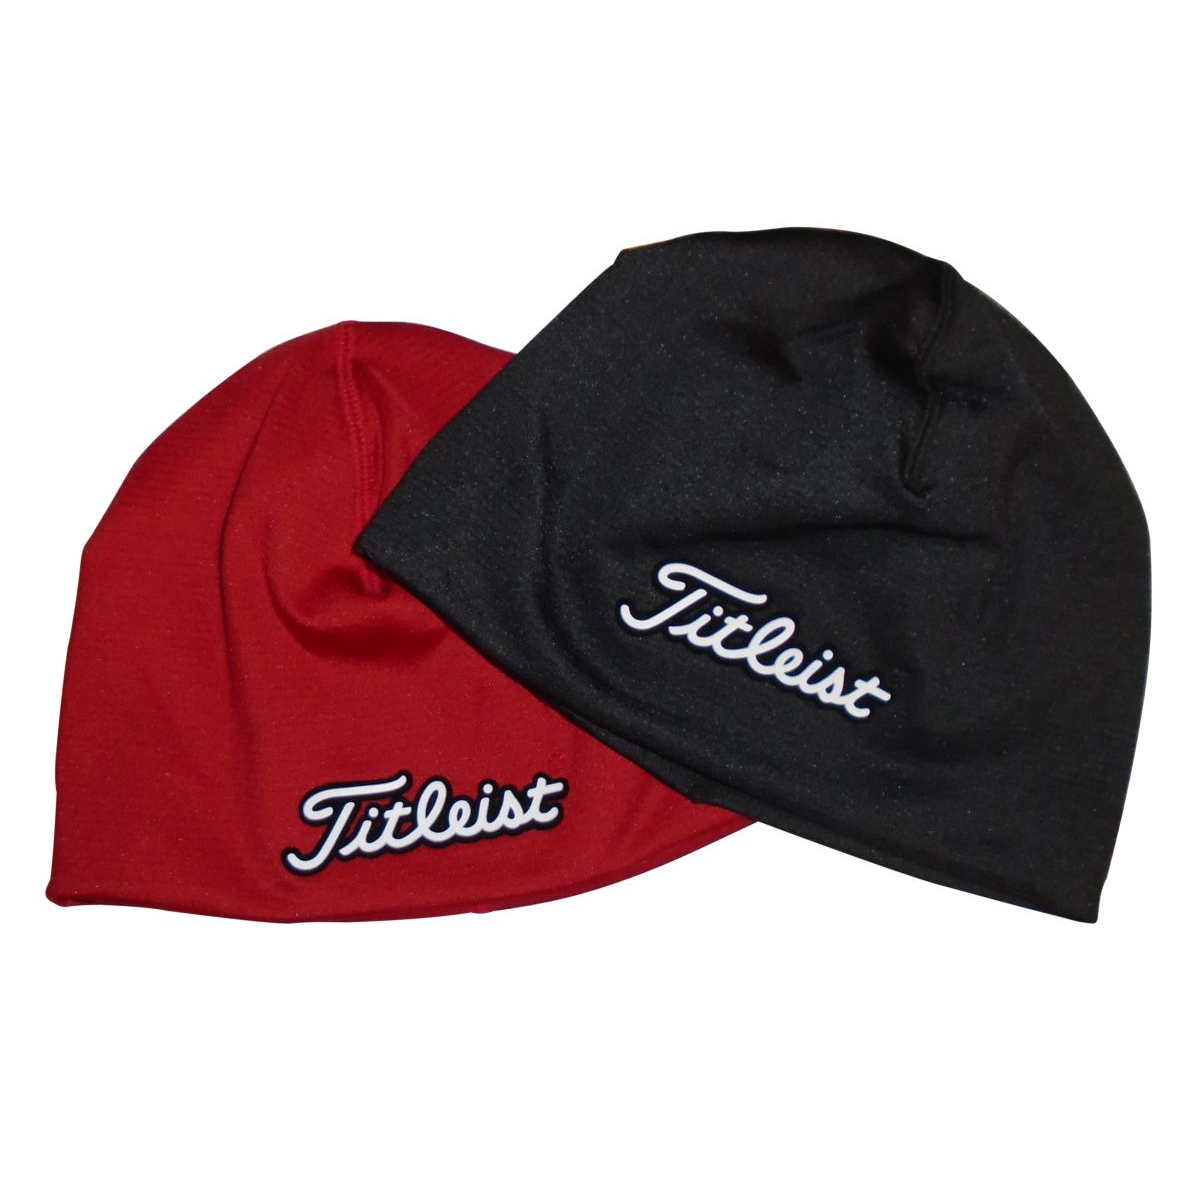 7b37583c70b Cole Golf - Titleist Performance Beanie Hats Titleist Performance ...